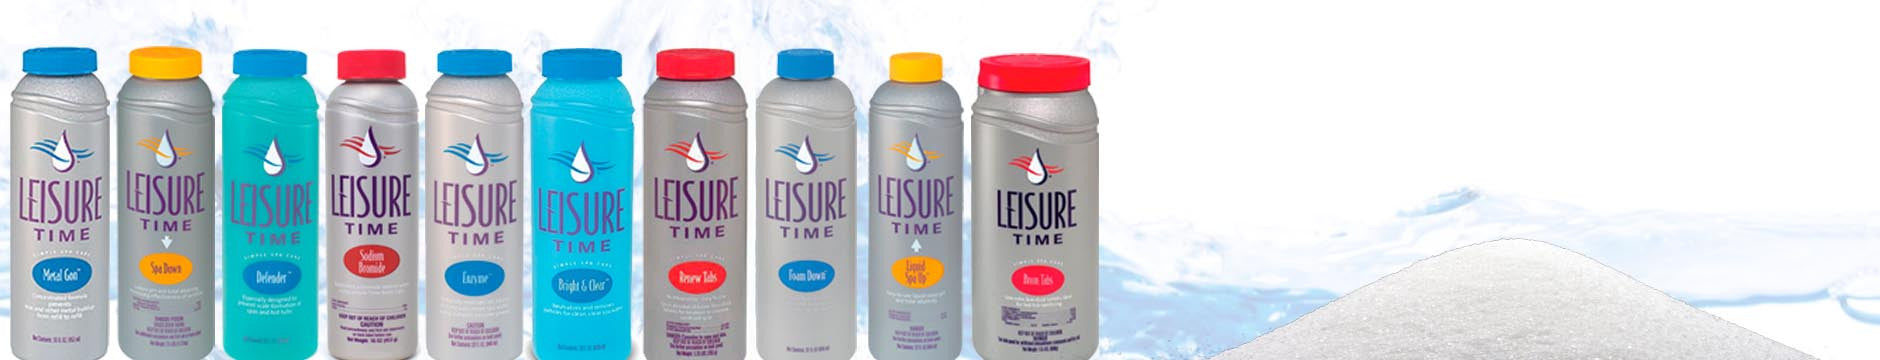 Leisure Time Products